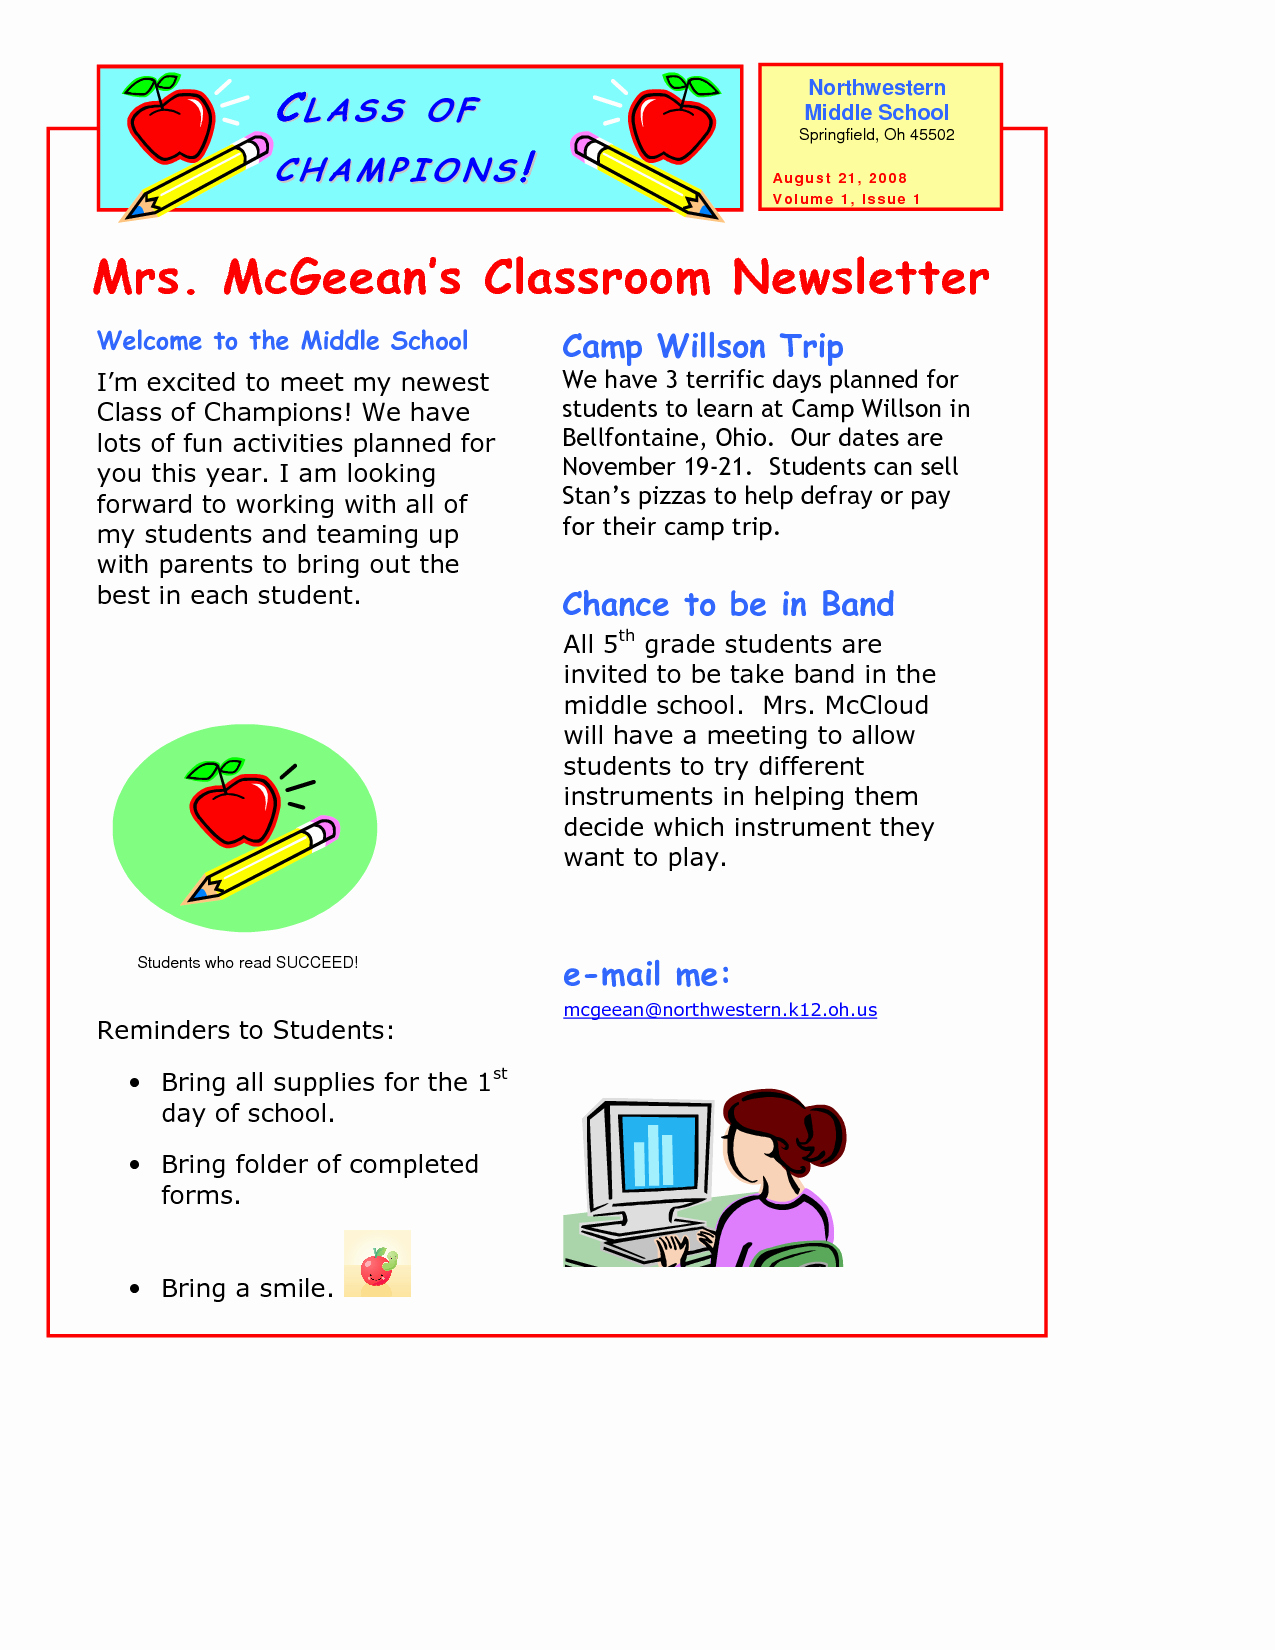 Free Newsletter Templates for Teachers Fresh Classroom Newsletter Template